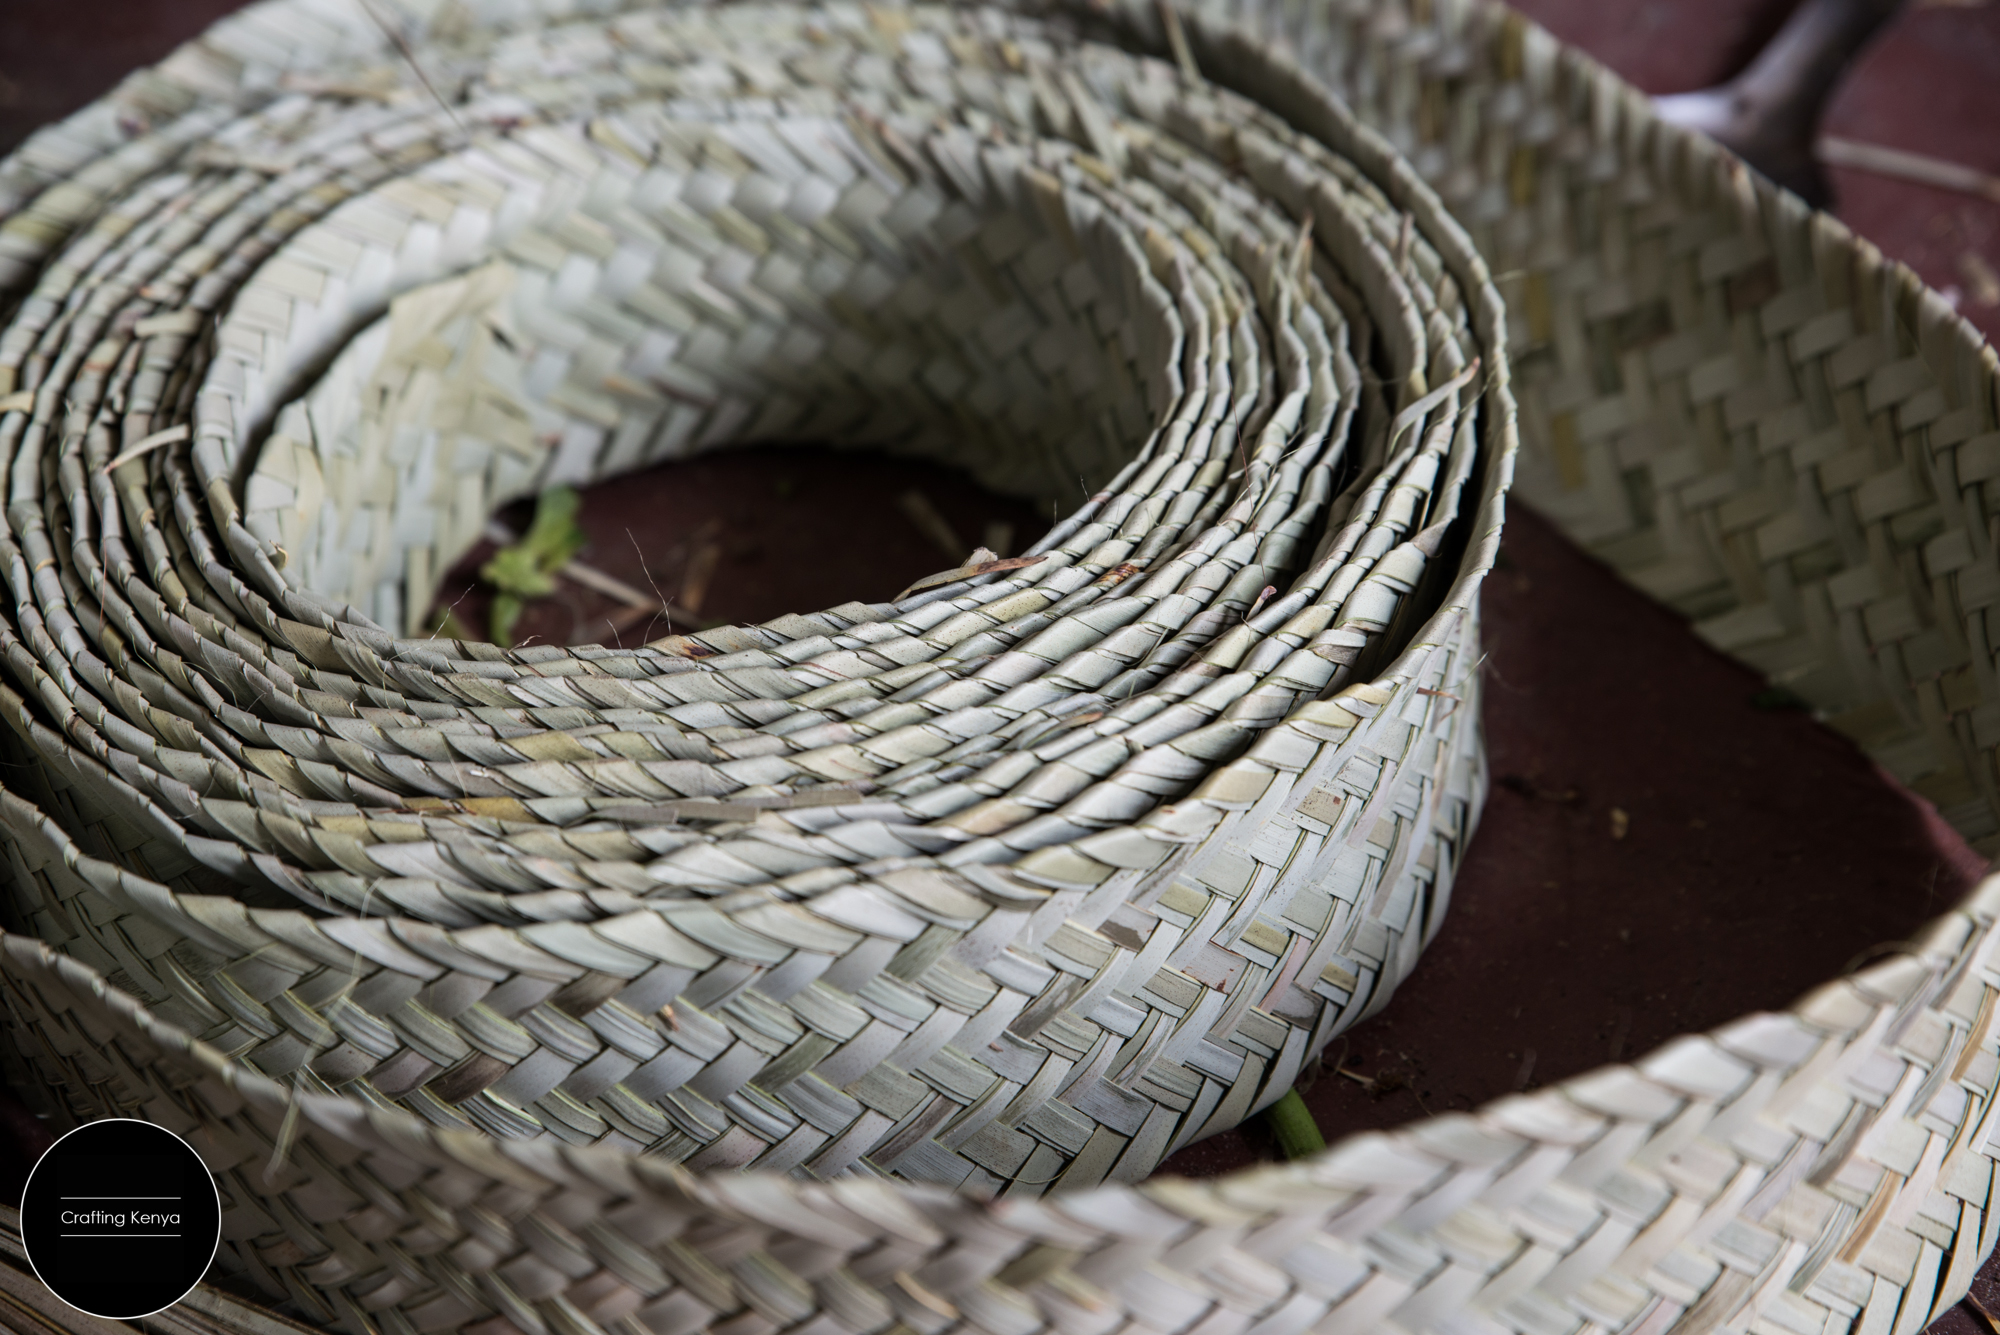 CraftingKenya_2014-09-18_Lamu_palm leaves weaving_007.jpg